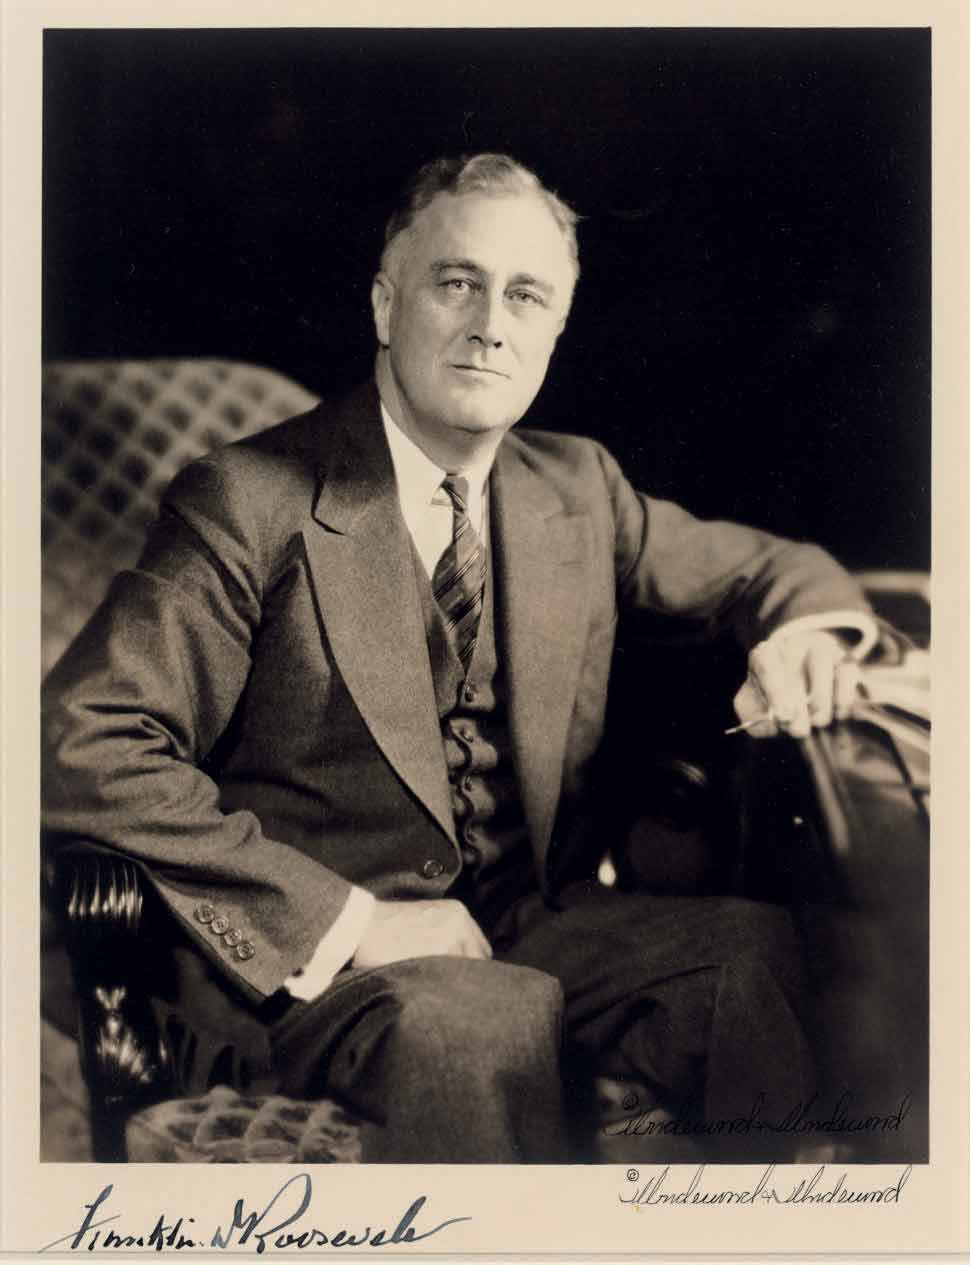 "ROOSEVELT, Franklin D. (1882-1945), President. Photograph signed (""Franklin D. Roosevelt""), n.d. [ca. 1933]. Underwood & Underwood, photographer. Black and white photographic portrait (9x7in.), matted and framed in a museum quality frame. Signed on lower edge of the matt."